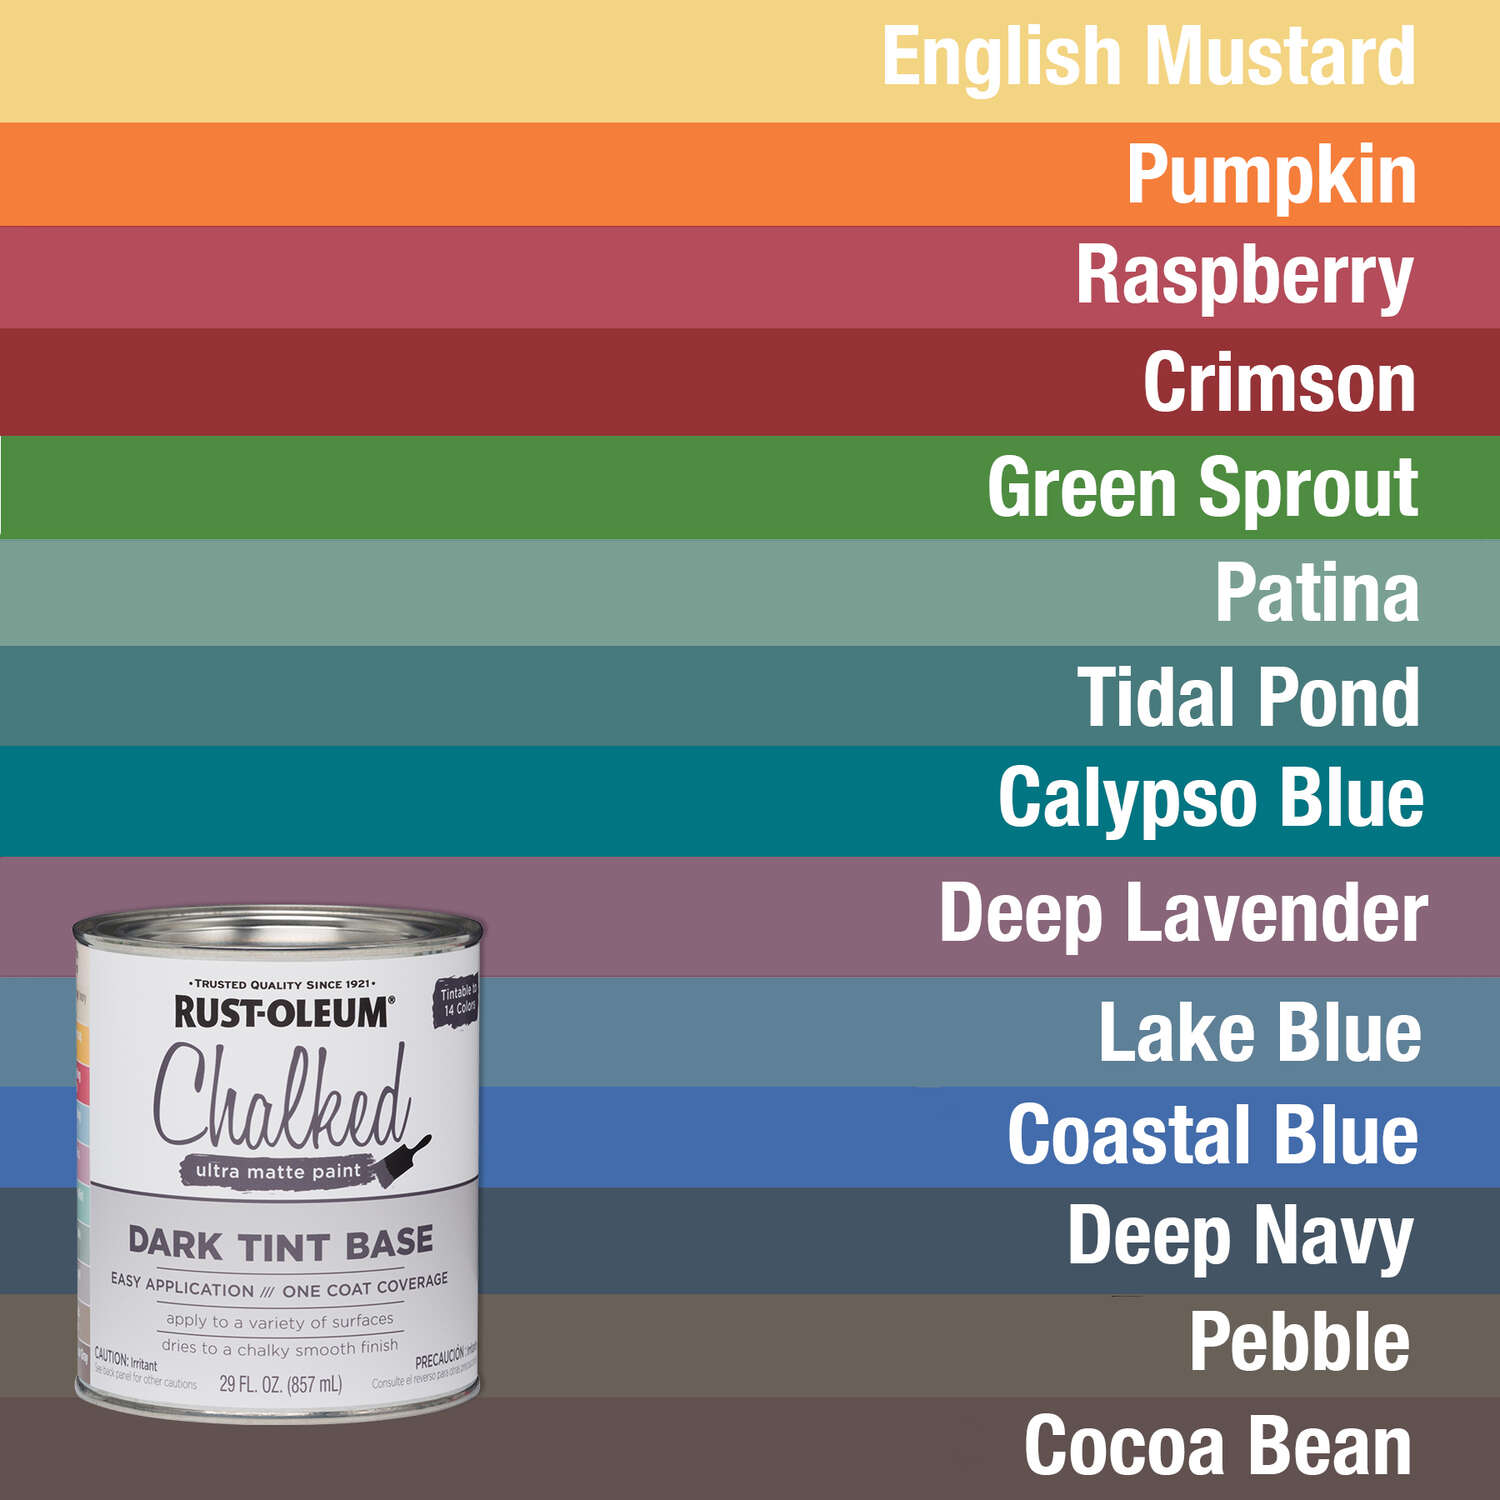 Rustoleum Chalked Paint - Dark Tint Base Colors - Review by Girl in the Garage